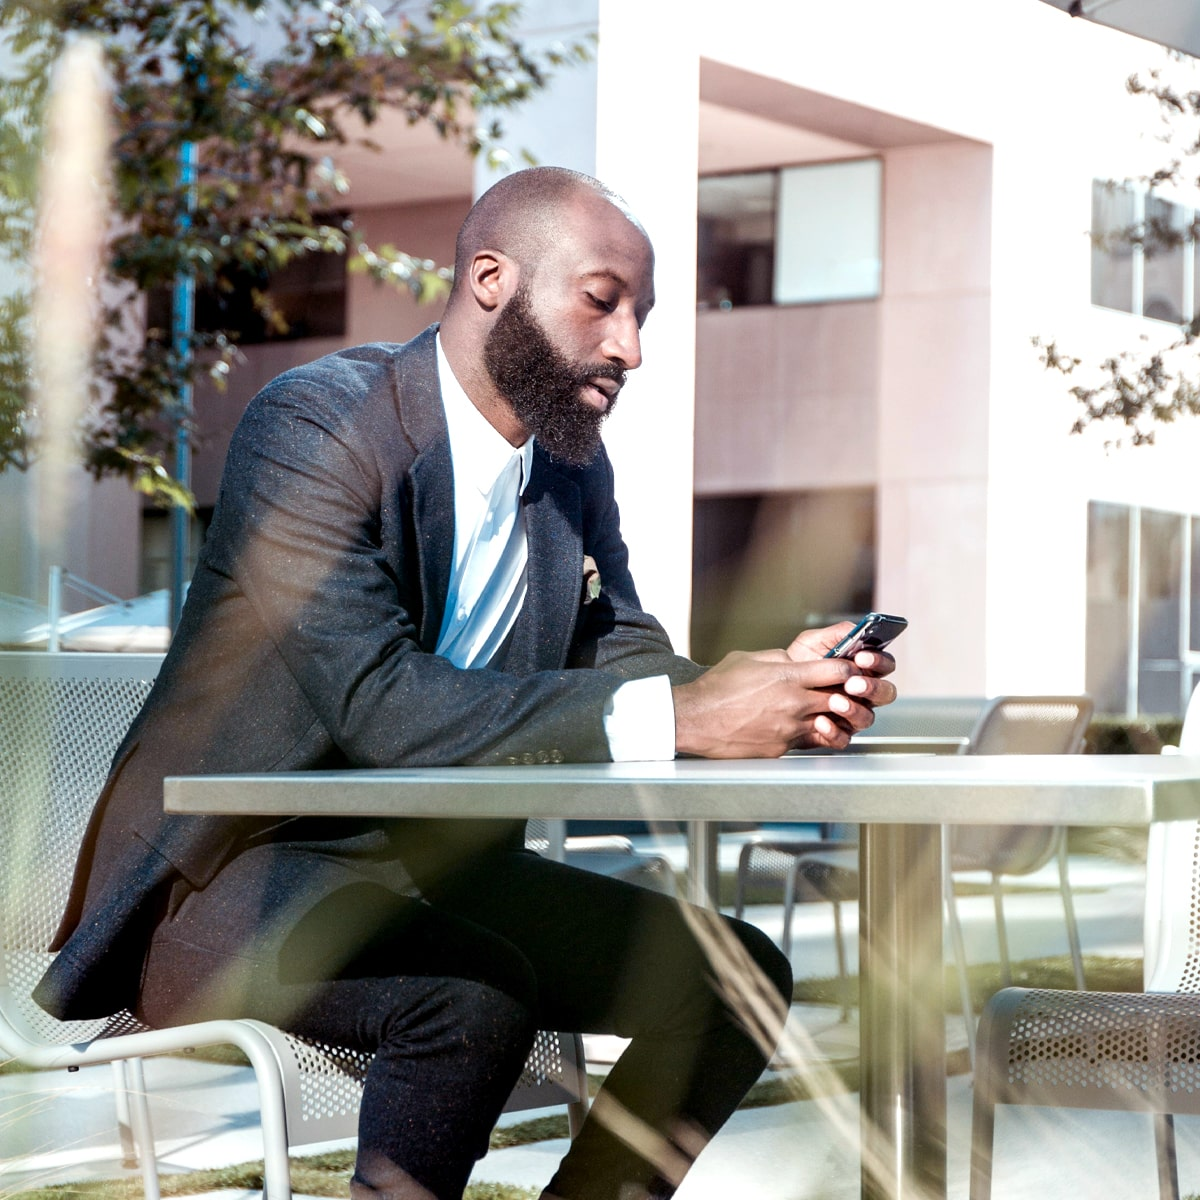 Black man in suit viewing the phone in his had while sitting on a table outside.